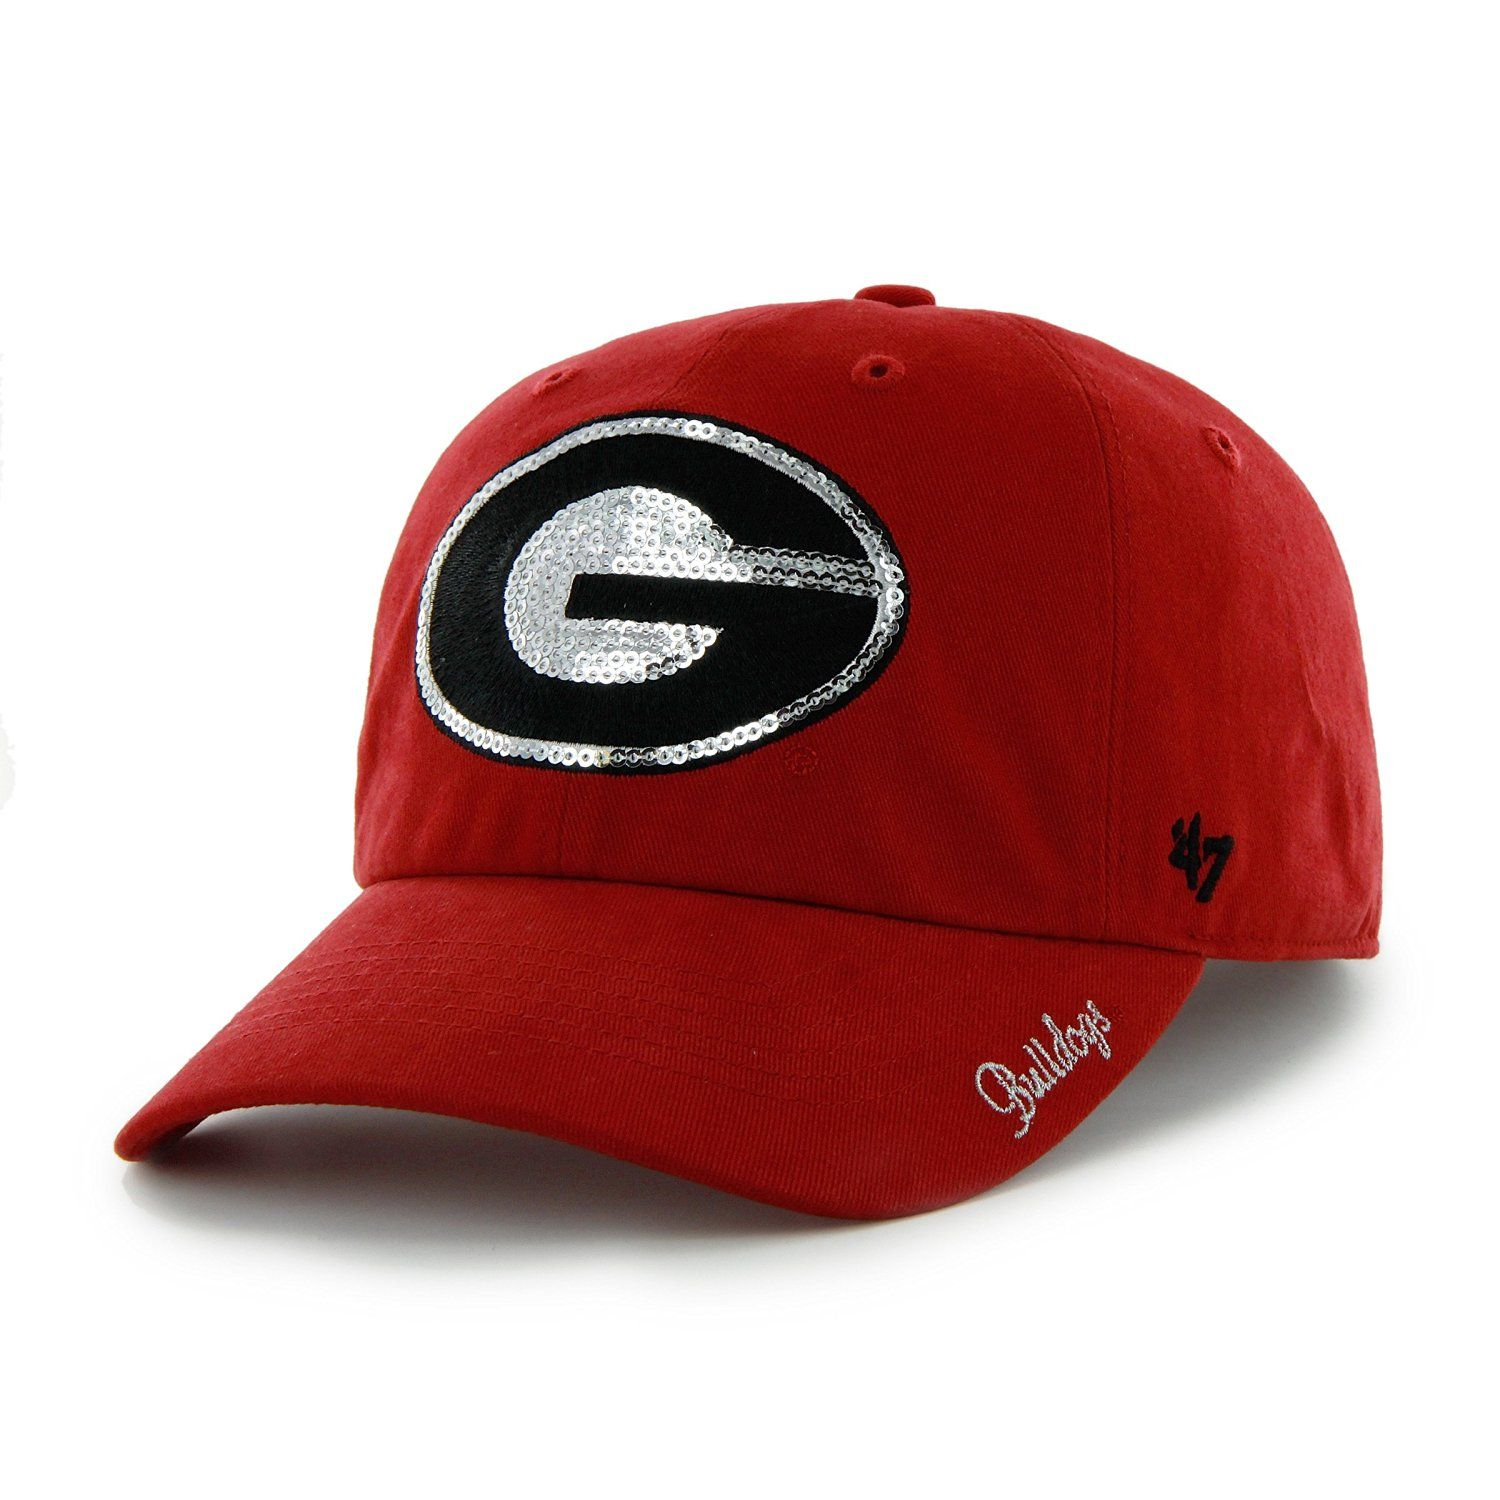 42c2b6ad027 Brand Women s Georgia Bulldogs Red Clean Up Sparkle Adjustable Hat - Dick s  Sporting Goods